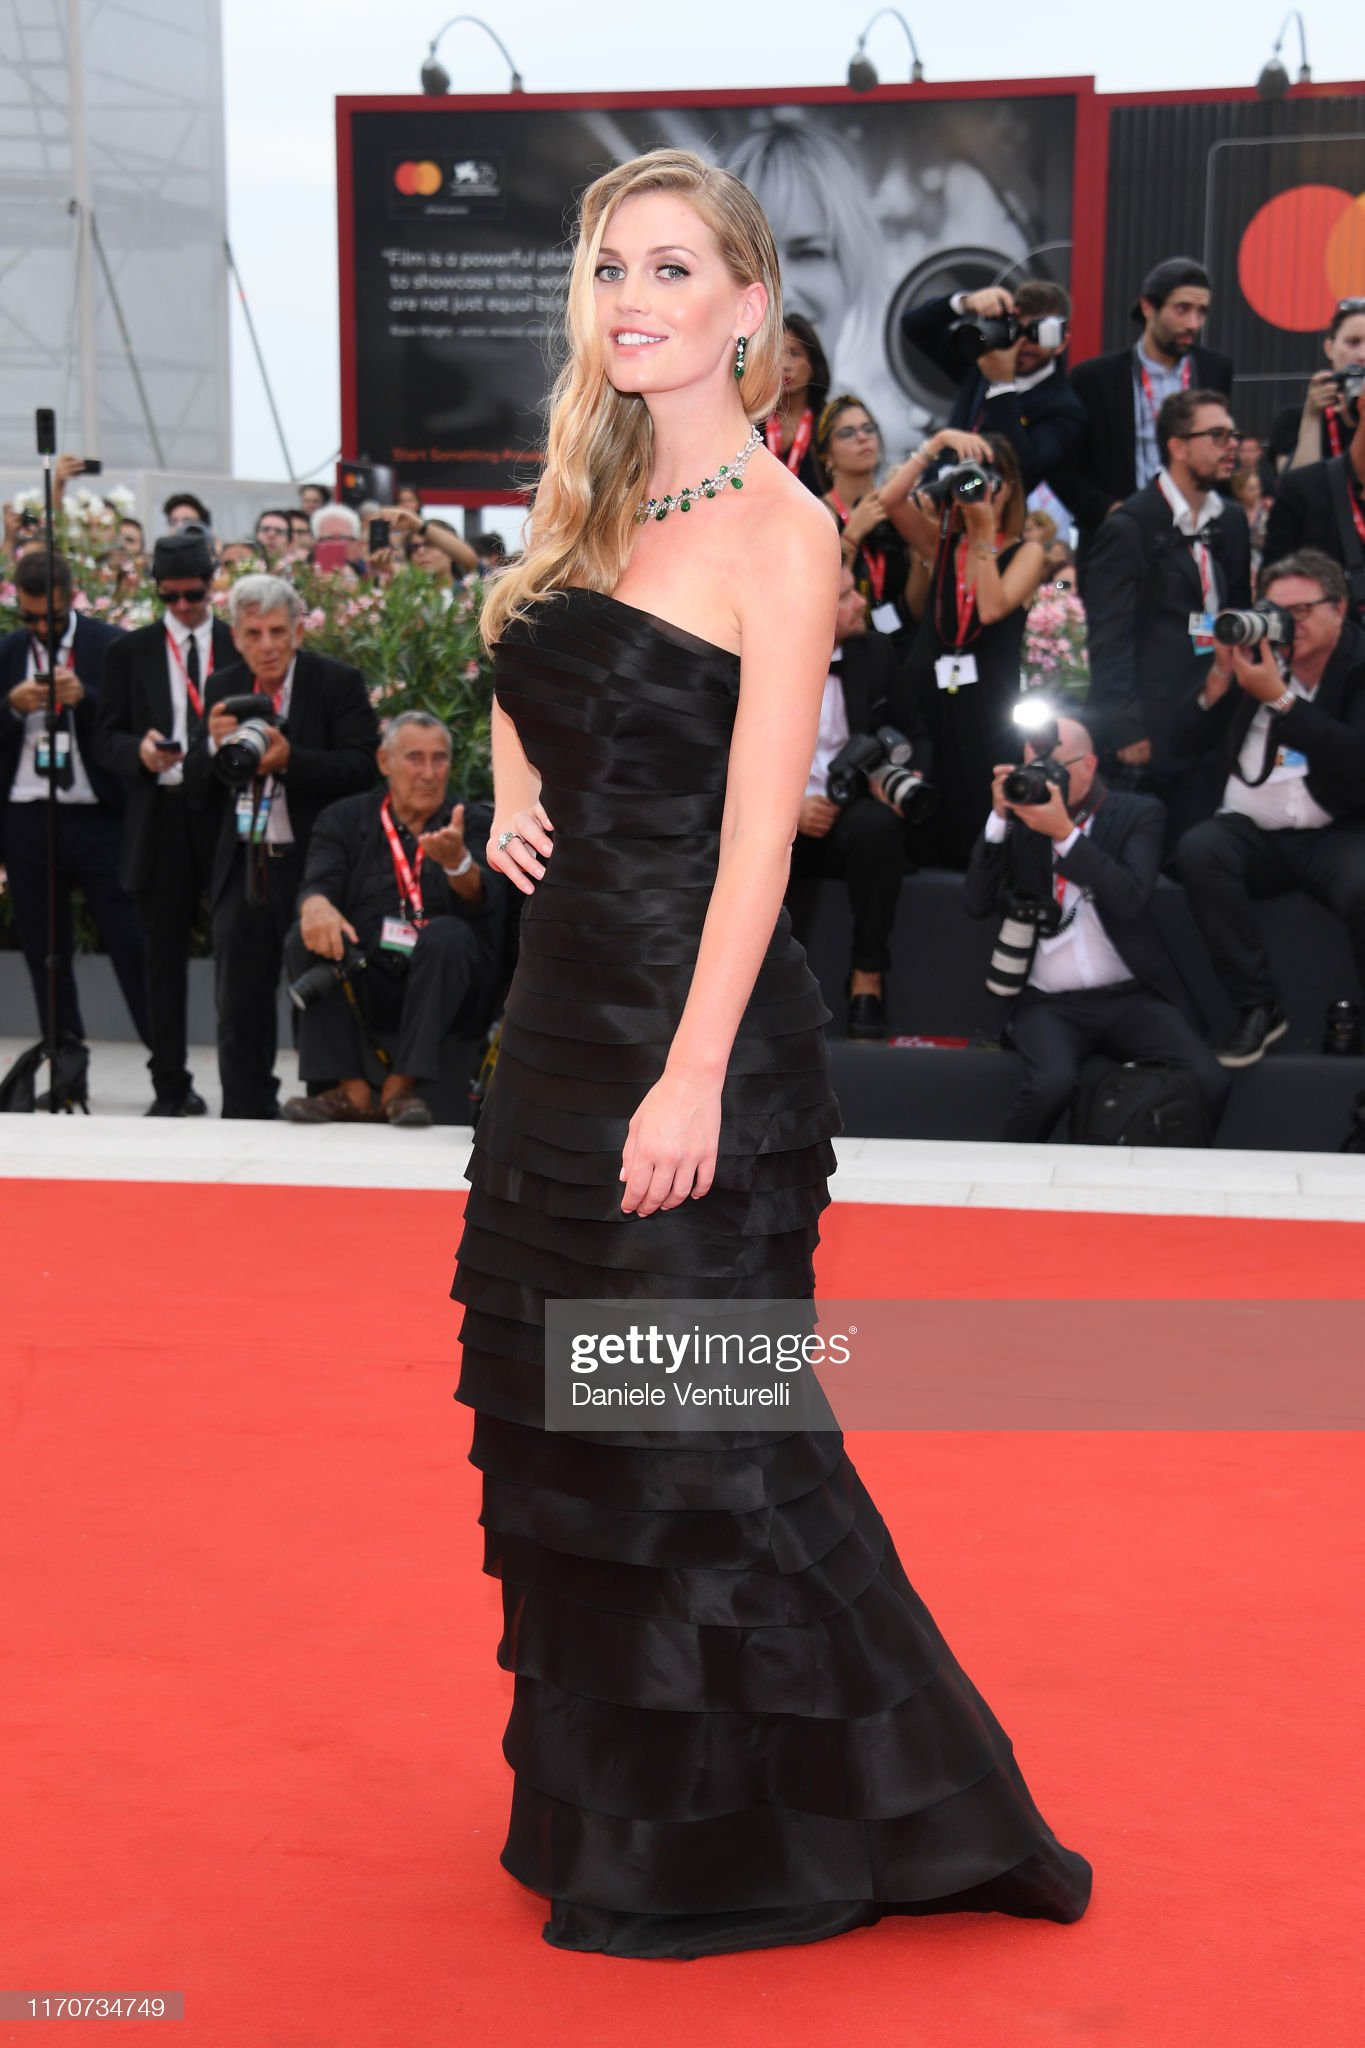 https://media.gettyimages.com/photos/lady-kitty-spencer-walks-the-red-carpet-ahead-of-the-opening-ceremony-picture-id1170734749?s=2048x2048